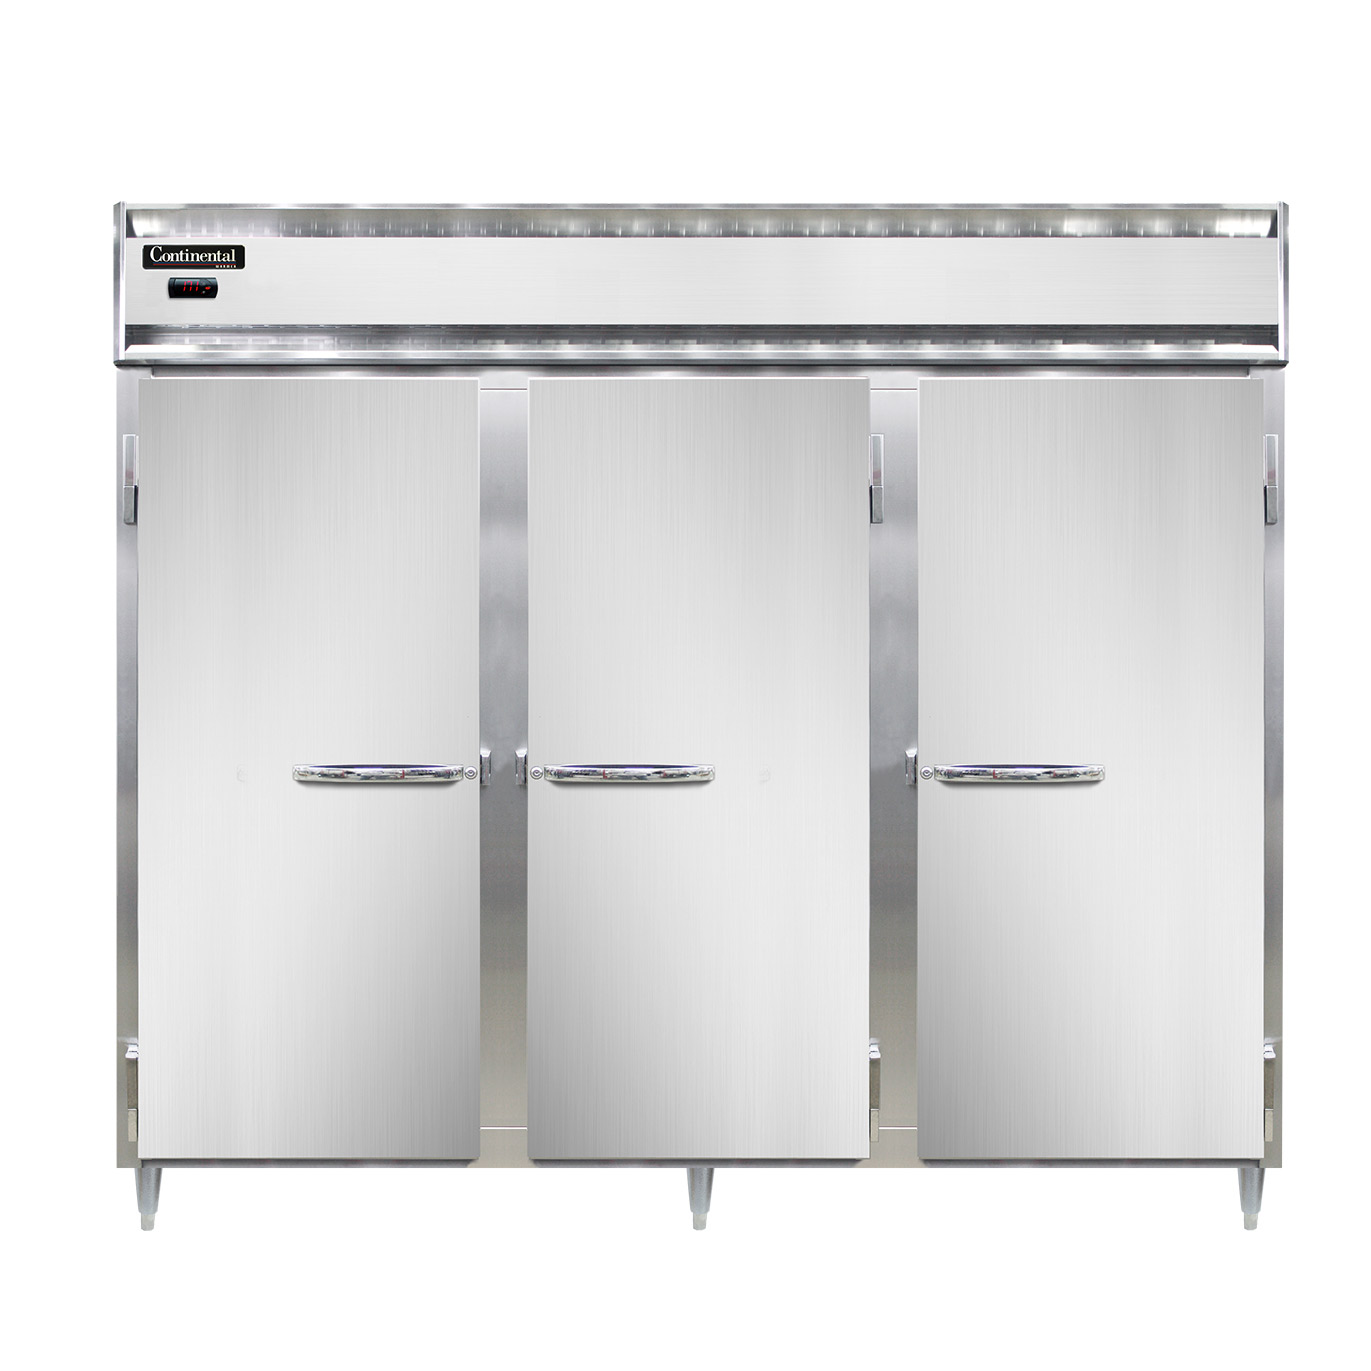 Continental Refrigerator DL3WE heated cabinet, reach-in